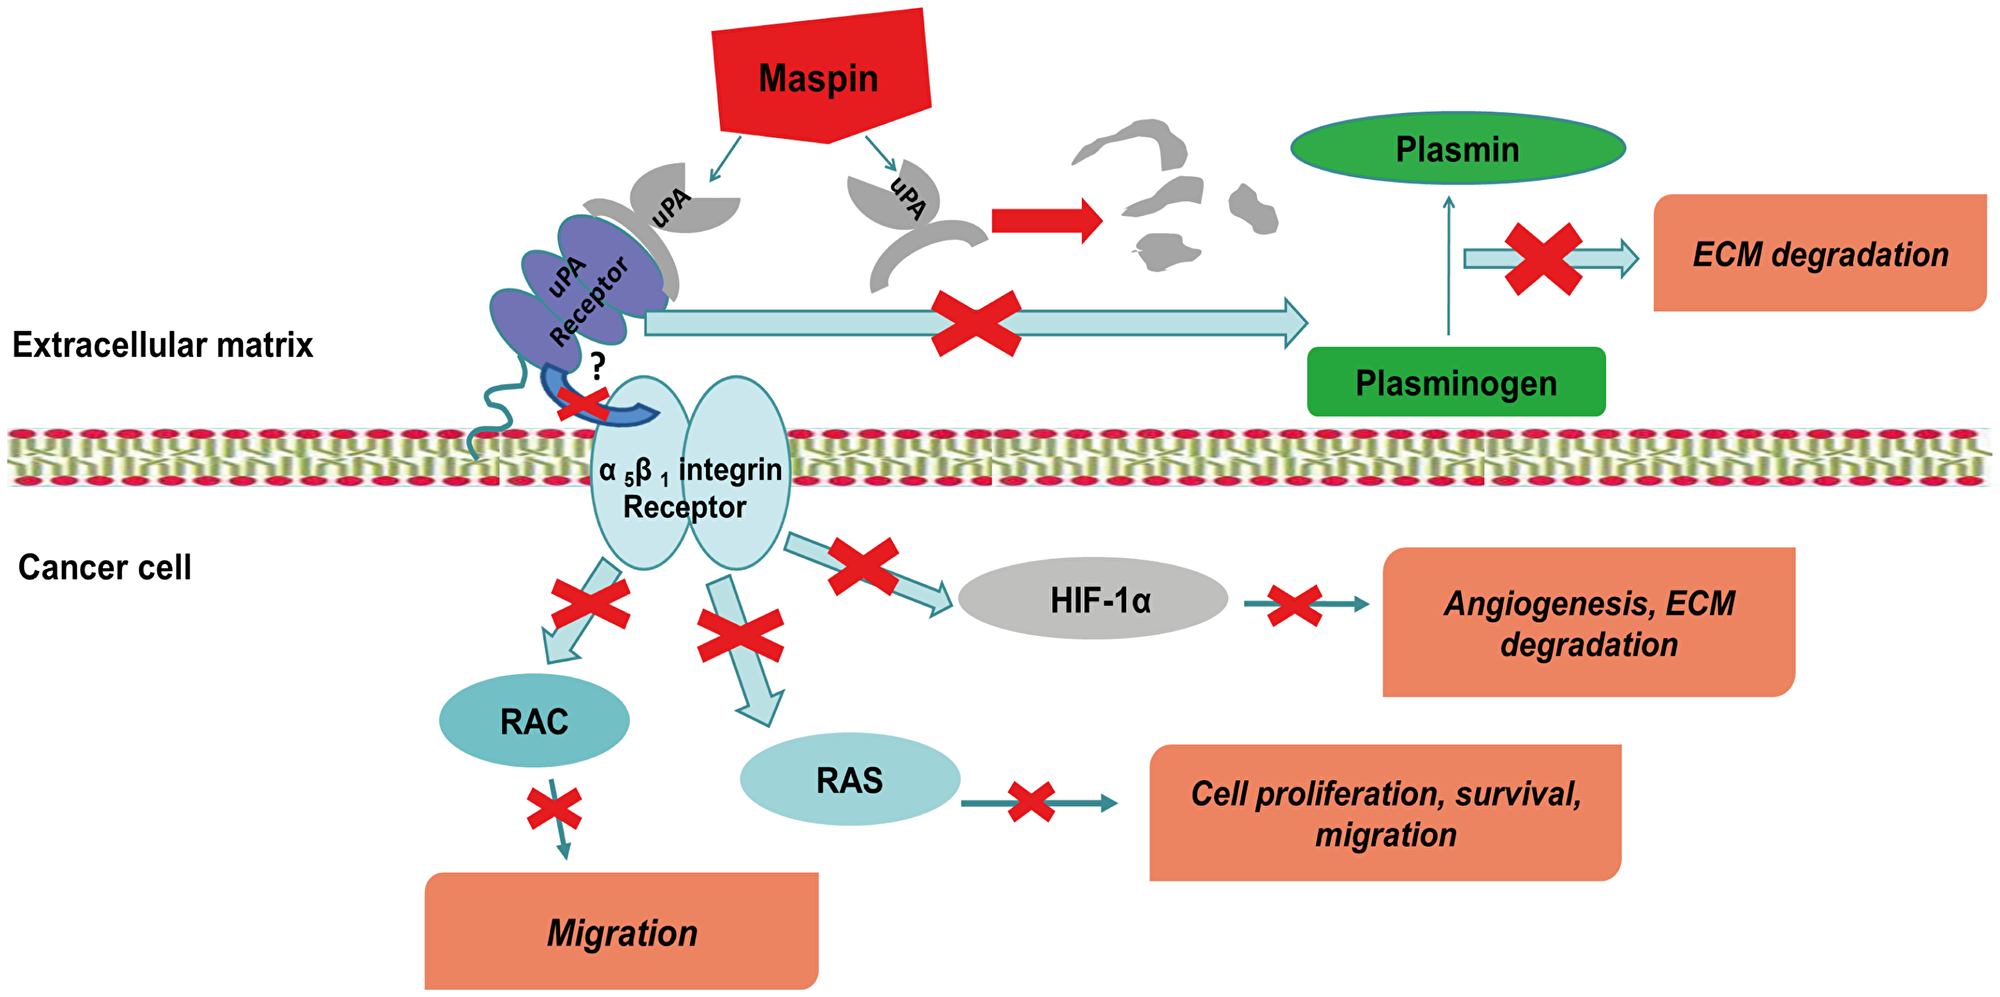 MASPIN can prevent the formation of UPA - UPA-receptor complex by a single step, and thus decrease the possibility of the abnormal degradation of the ECM, the development metastasis and angiogenesis.